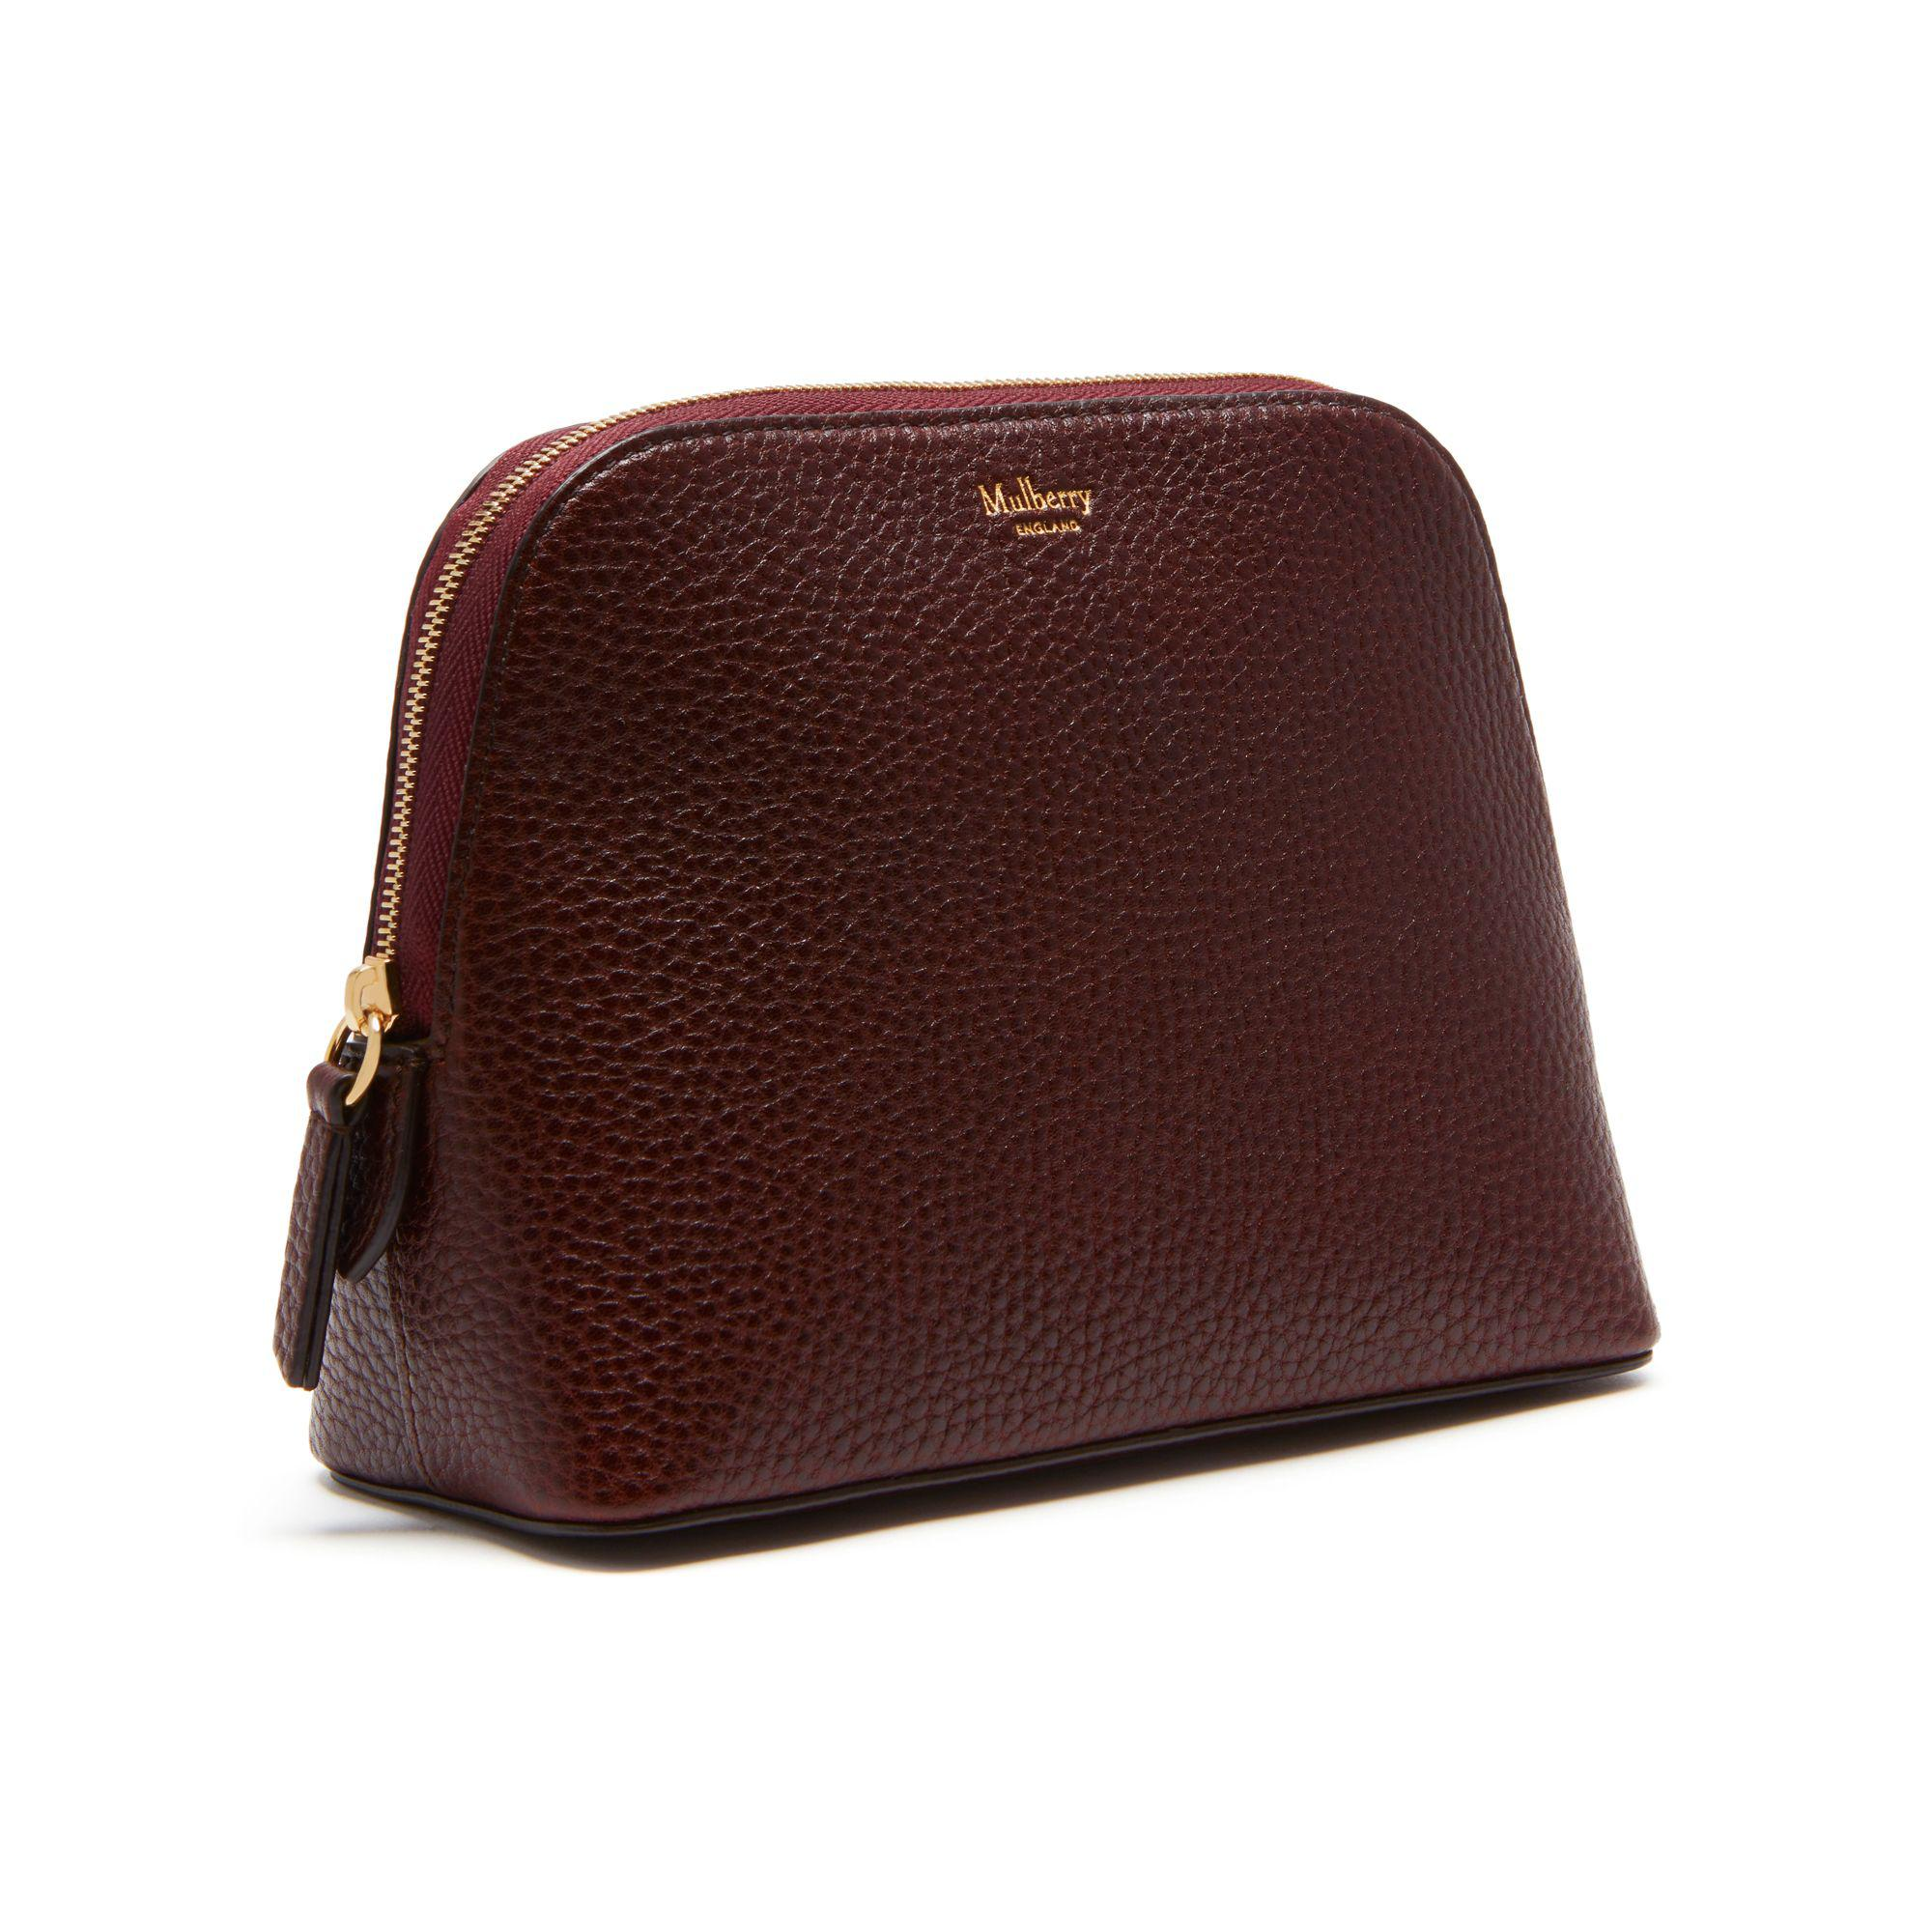 0d66a4ac294e new zealand mulberry oxblood bayswater 63259 f7cf1  top quality mulberry  multicolor cosmetic pouch lyst. view fullscreen 049f5 772a4